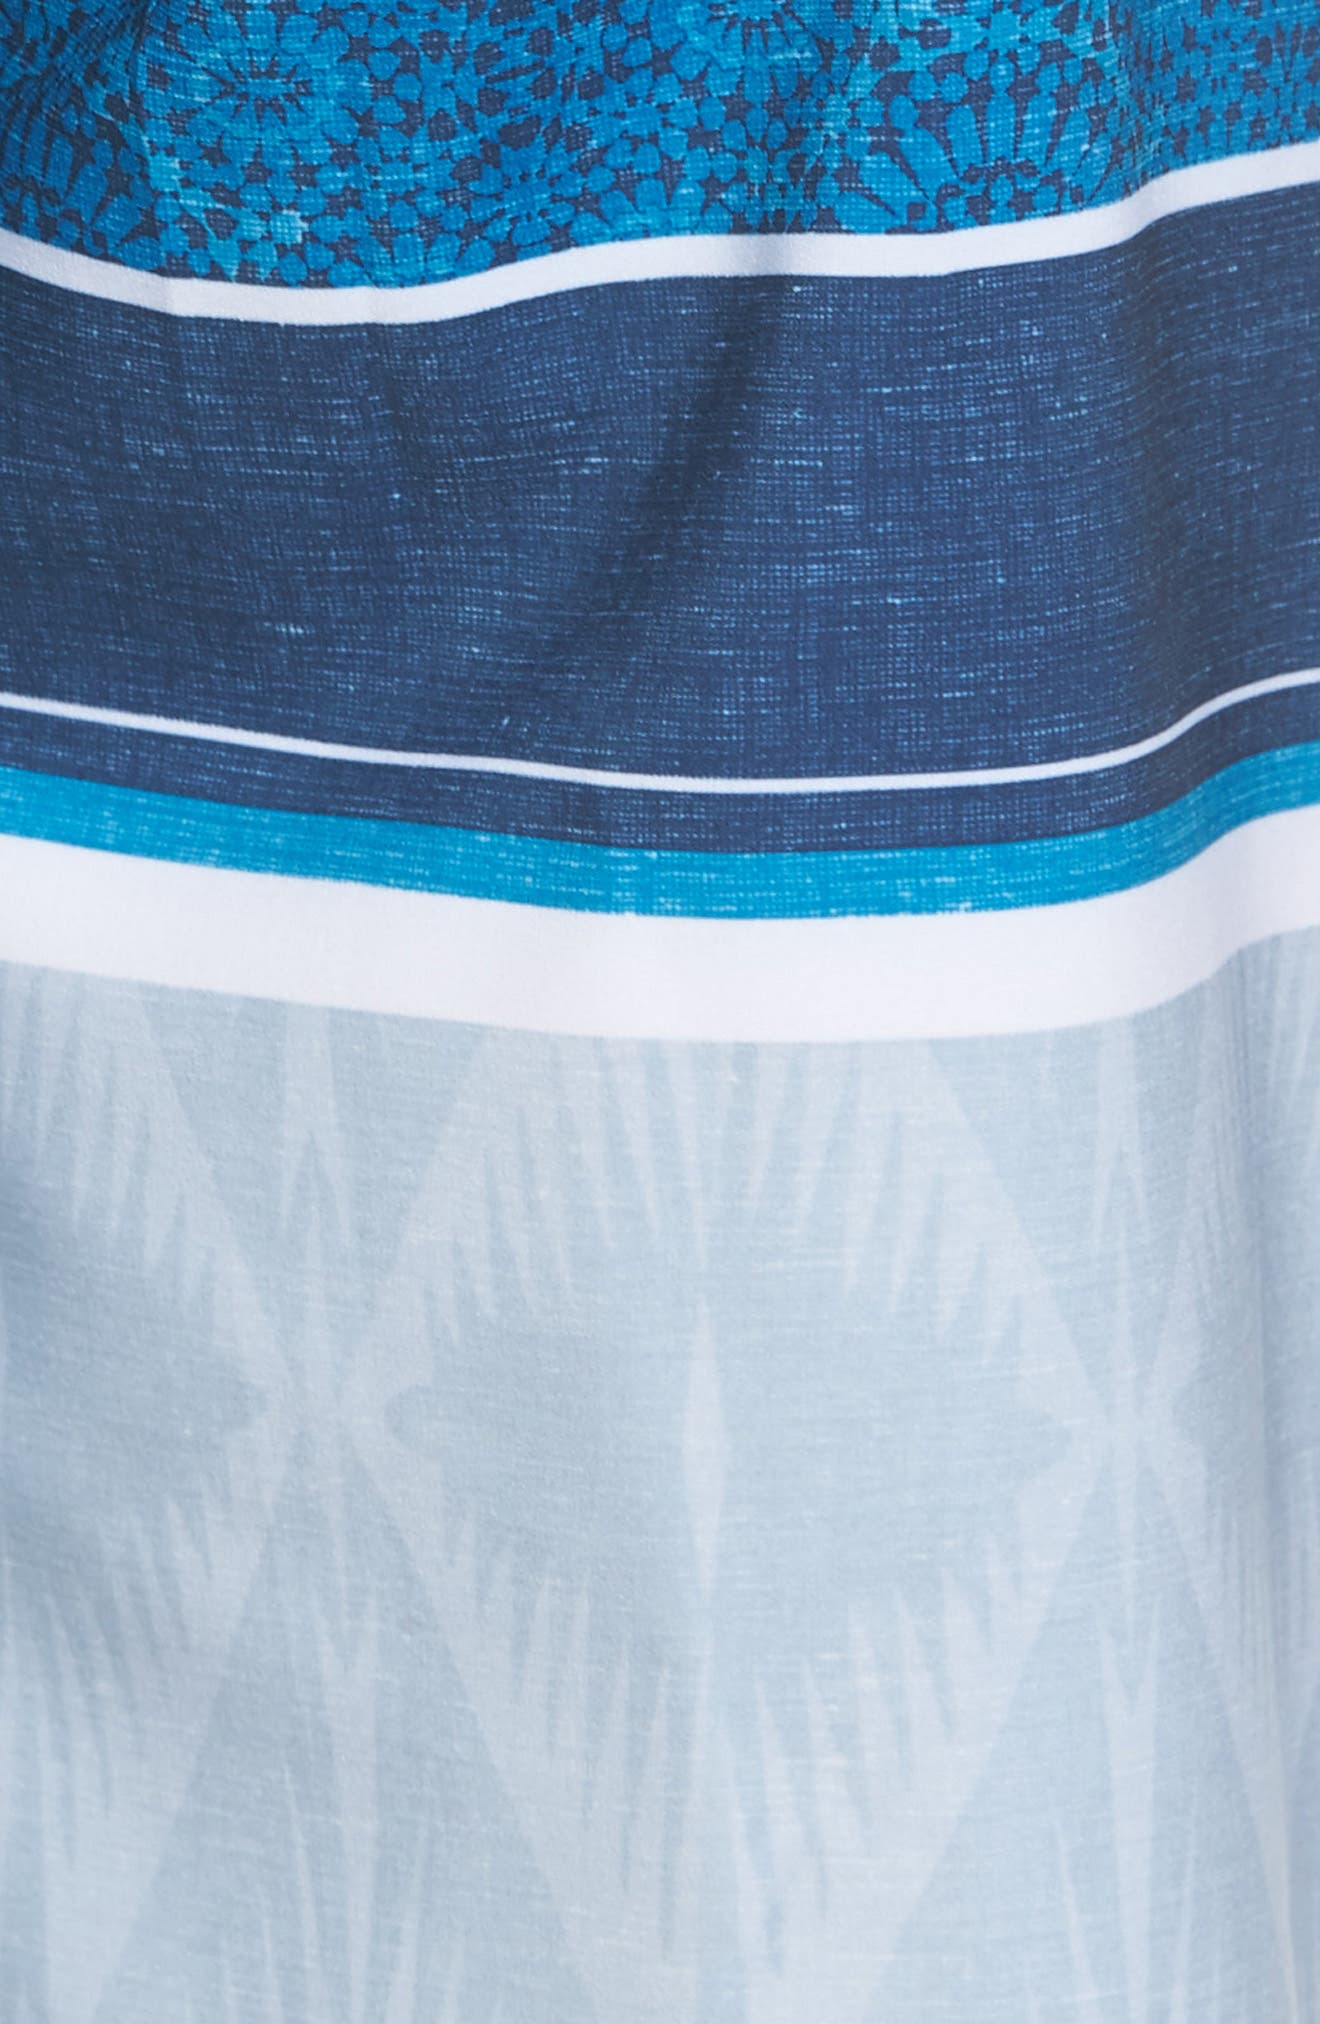 Mirage Sessions Board Shorts,                             Alternate thumbnail 5, color,                             400